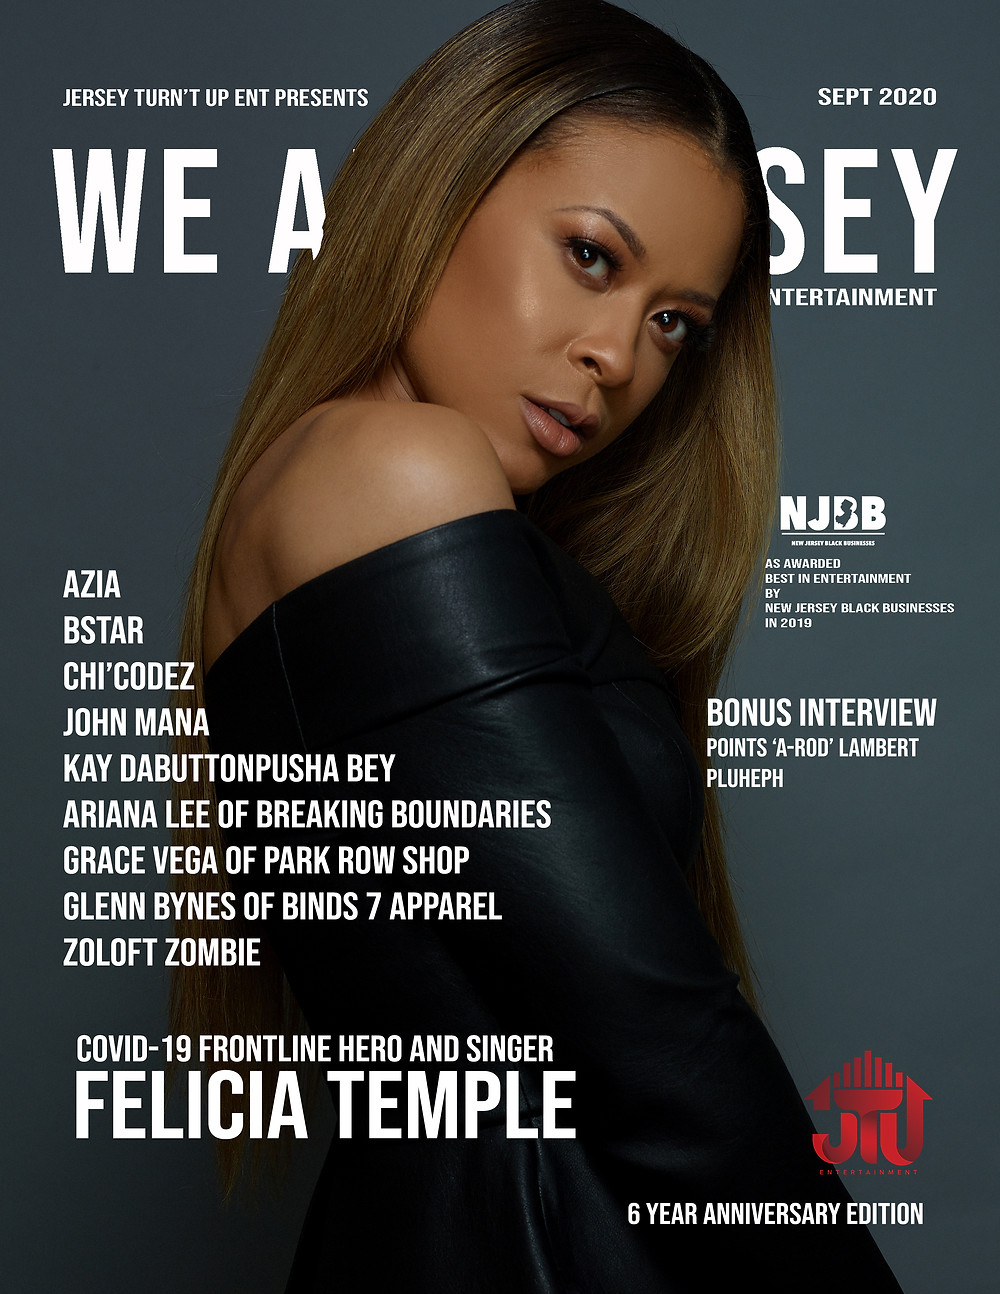 We Are Jersey Magazine September 2020 Cover featuring COVID-19 Frontline Hero and Singer Felicia Temple